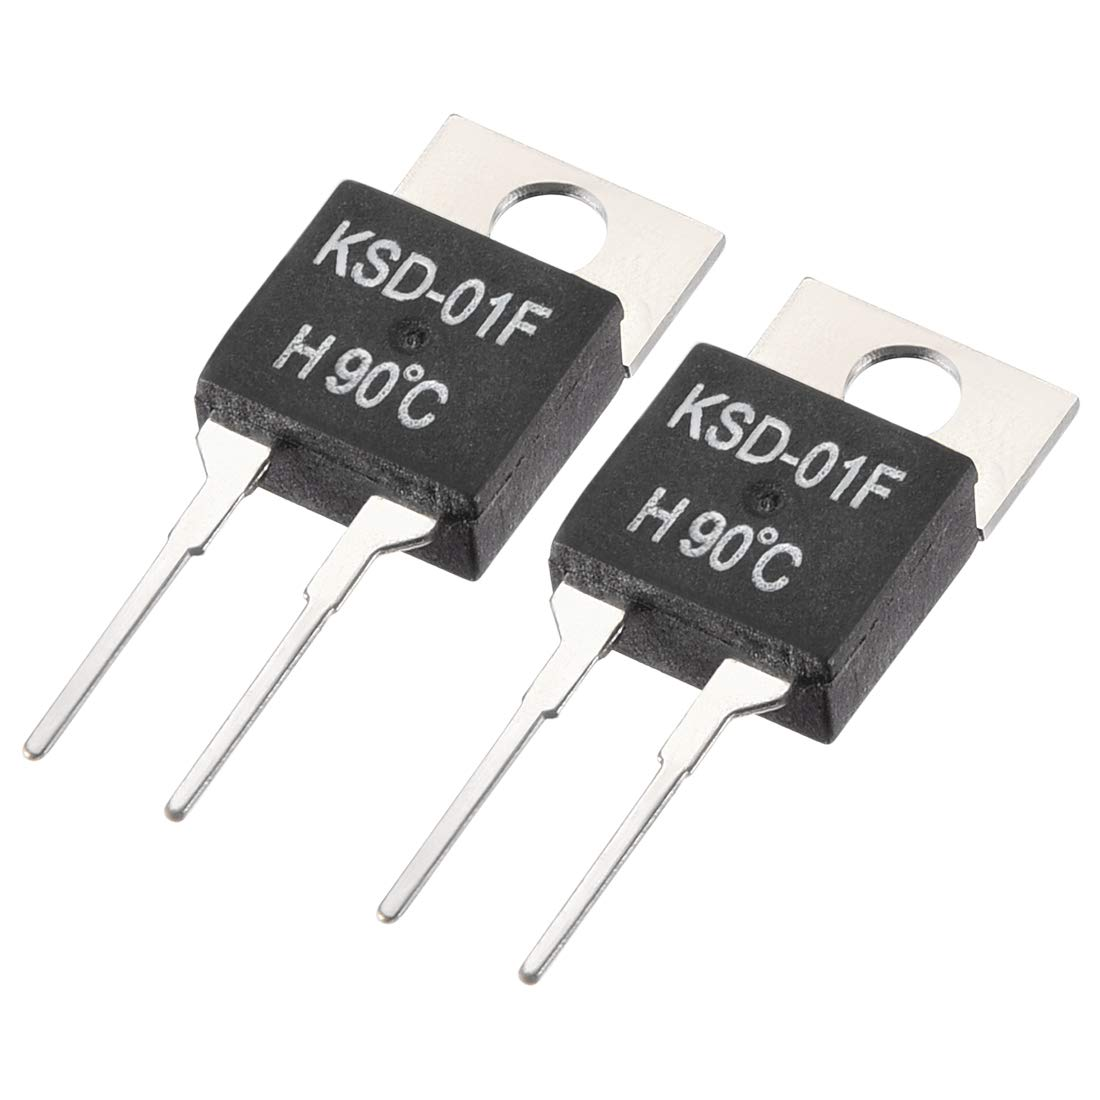 uxcell Normally Open Temperature Switch, KSD-01F Thermal Switch Thermostat Temperature Controller 90℃ N.O 2pcs